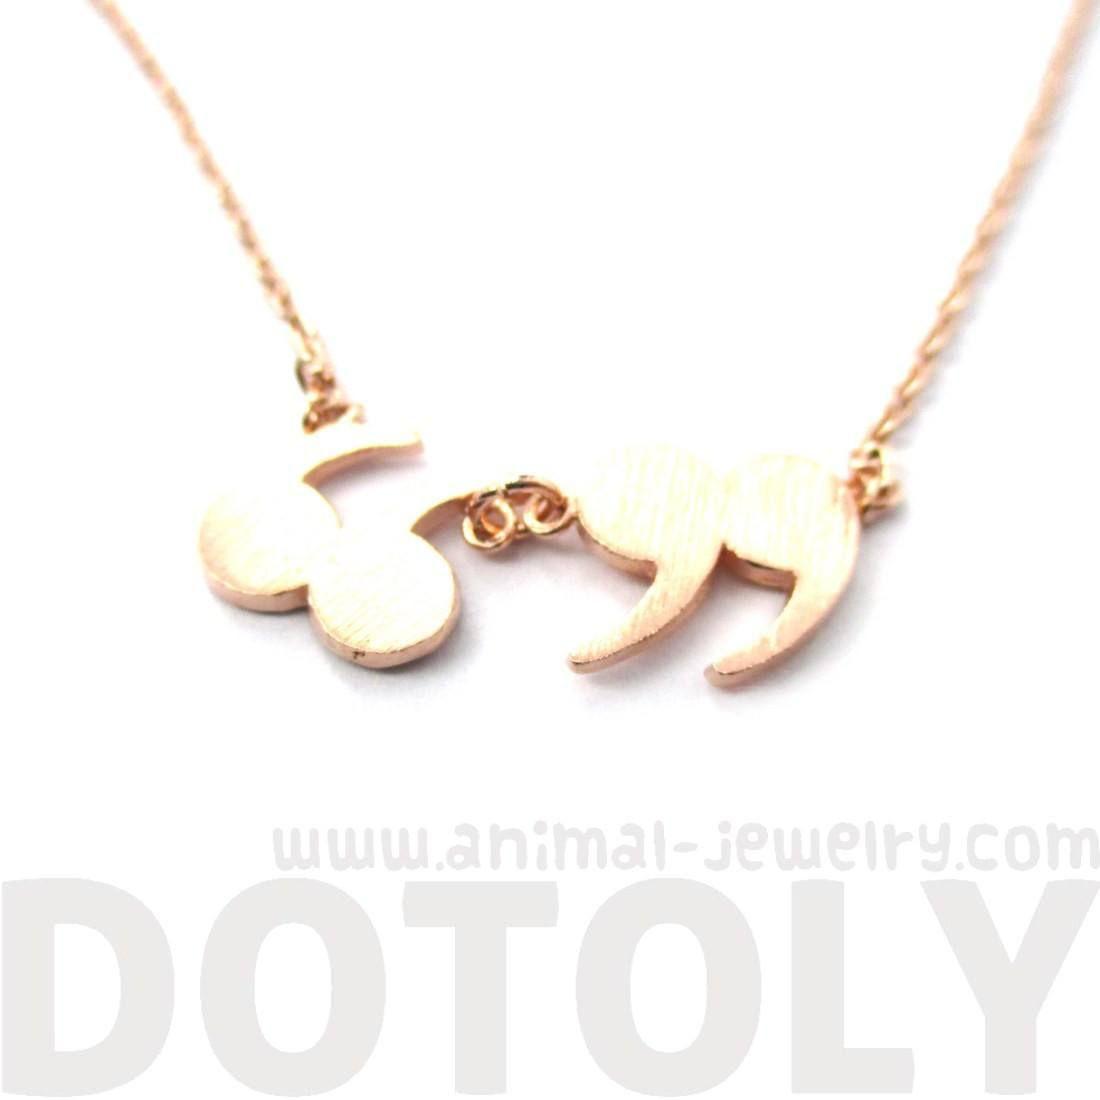 Quotation Marks Inverted Commas Shaped Charm Necklace in Rose Gold